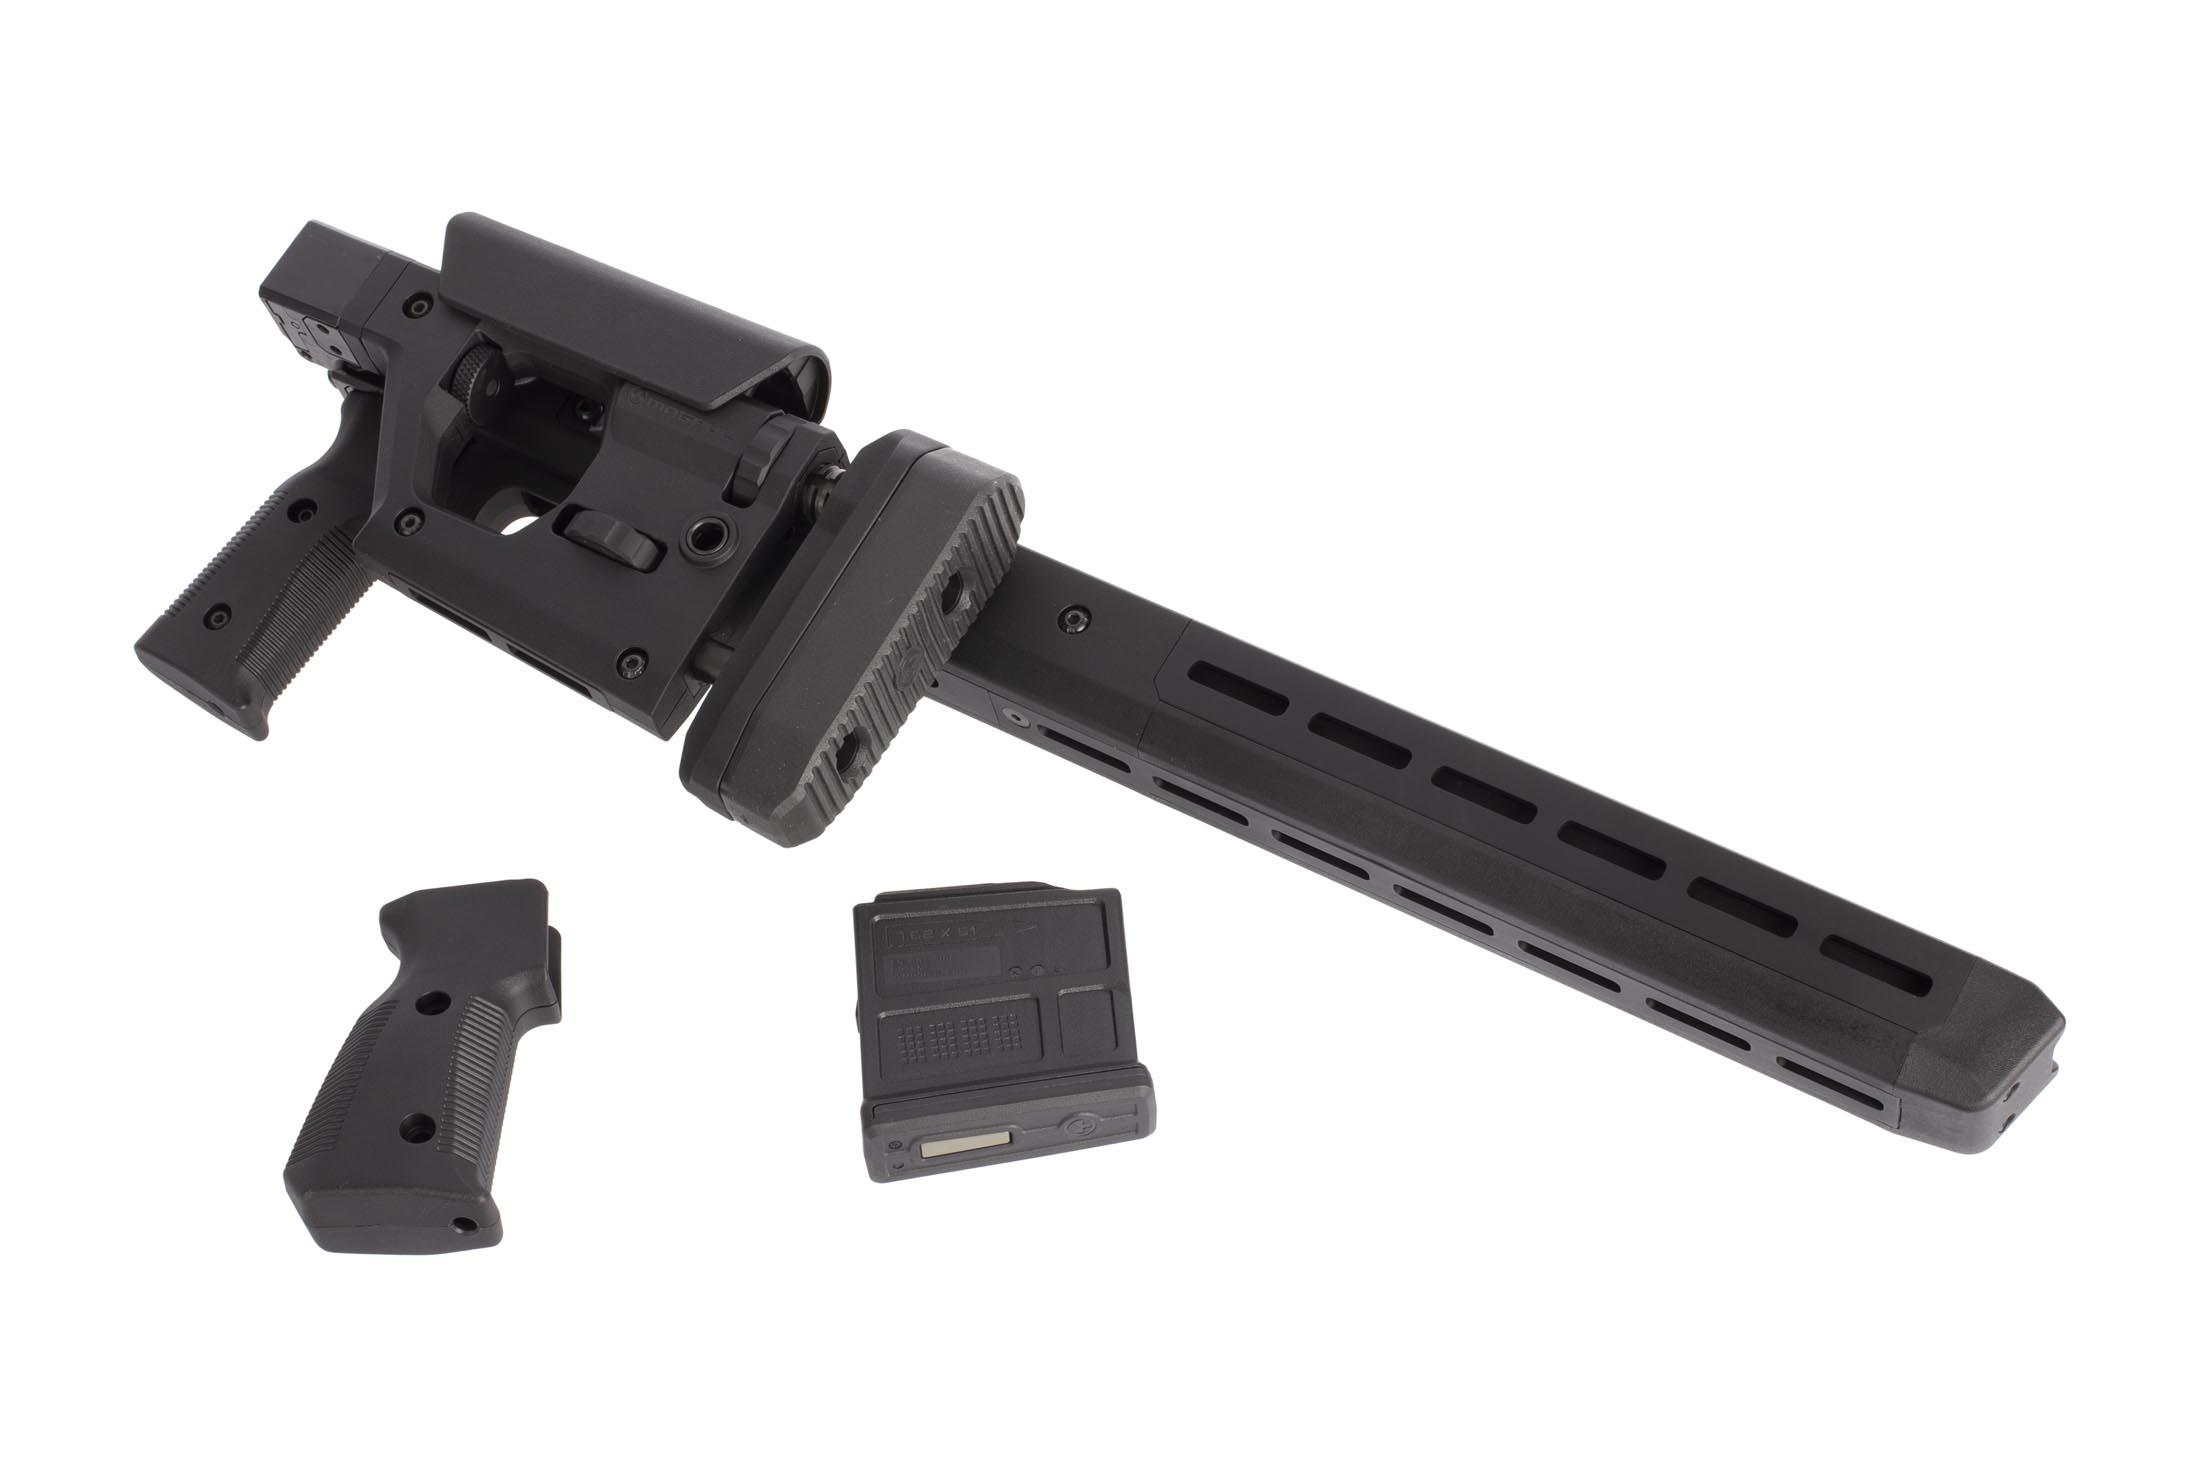 Magpul Pro 700 Remington 700 short action rifle chassis is M-LOK compatible, includes an alternate grip, and a 5 round AICS mag.